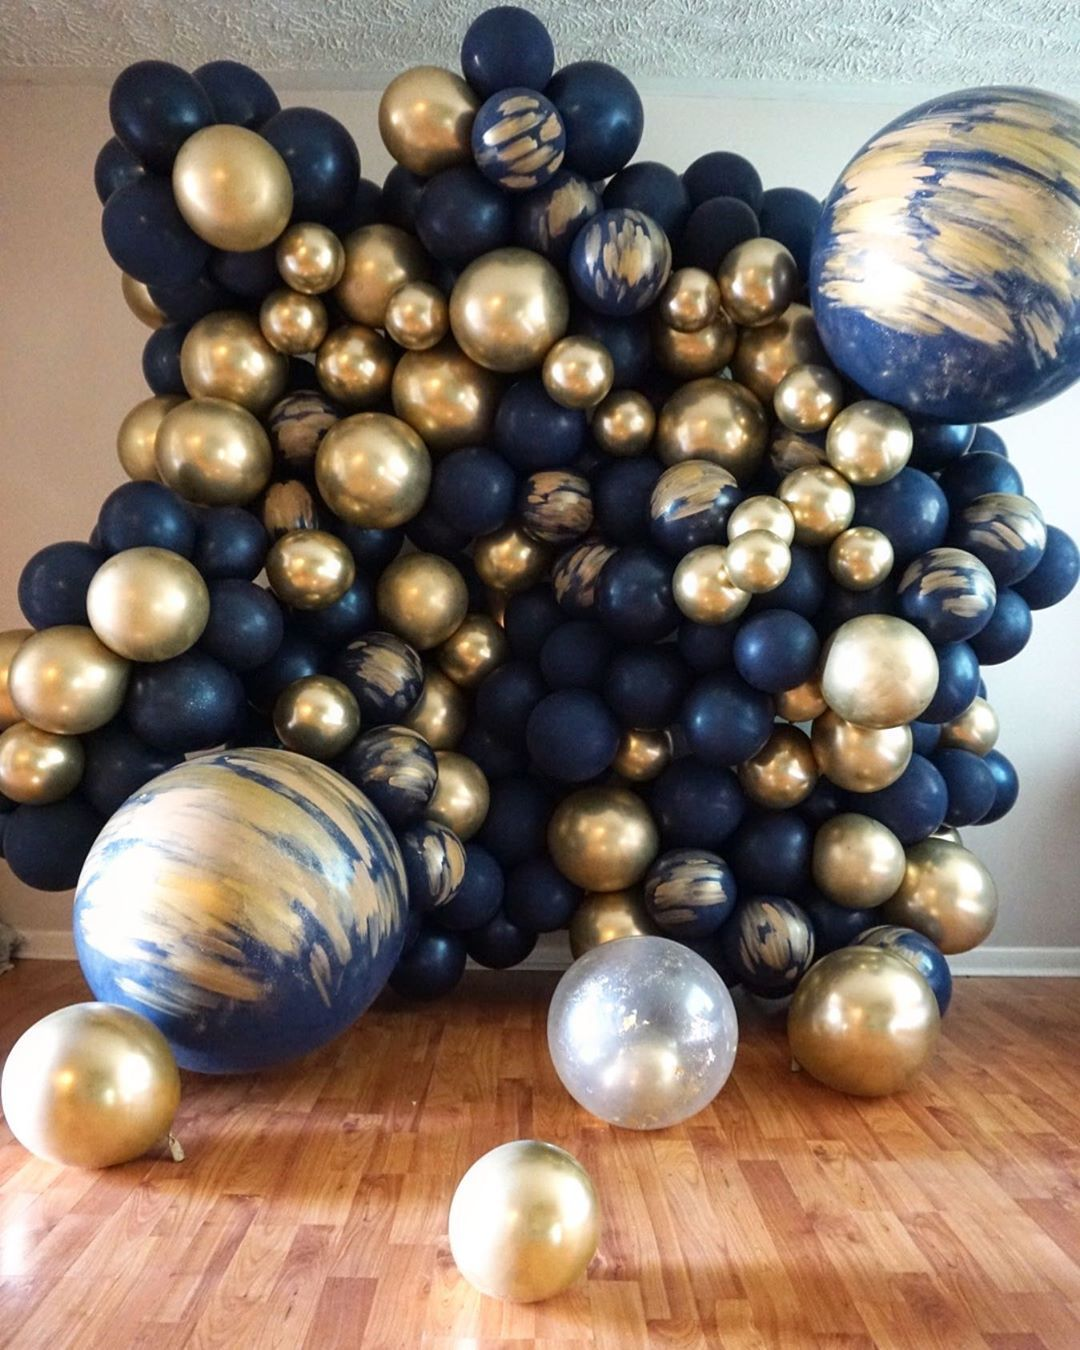 Balloons By B On Instagram Balloon Wall Custom Hand Painted That Bougie Gold Make Em S Blue Party Decorations Gold Balloons Decorations Balloon Wall